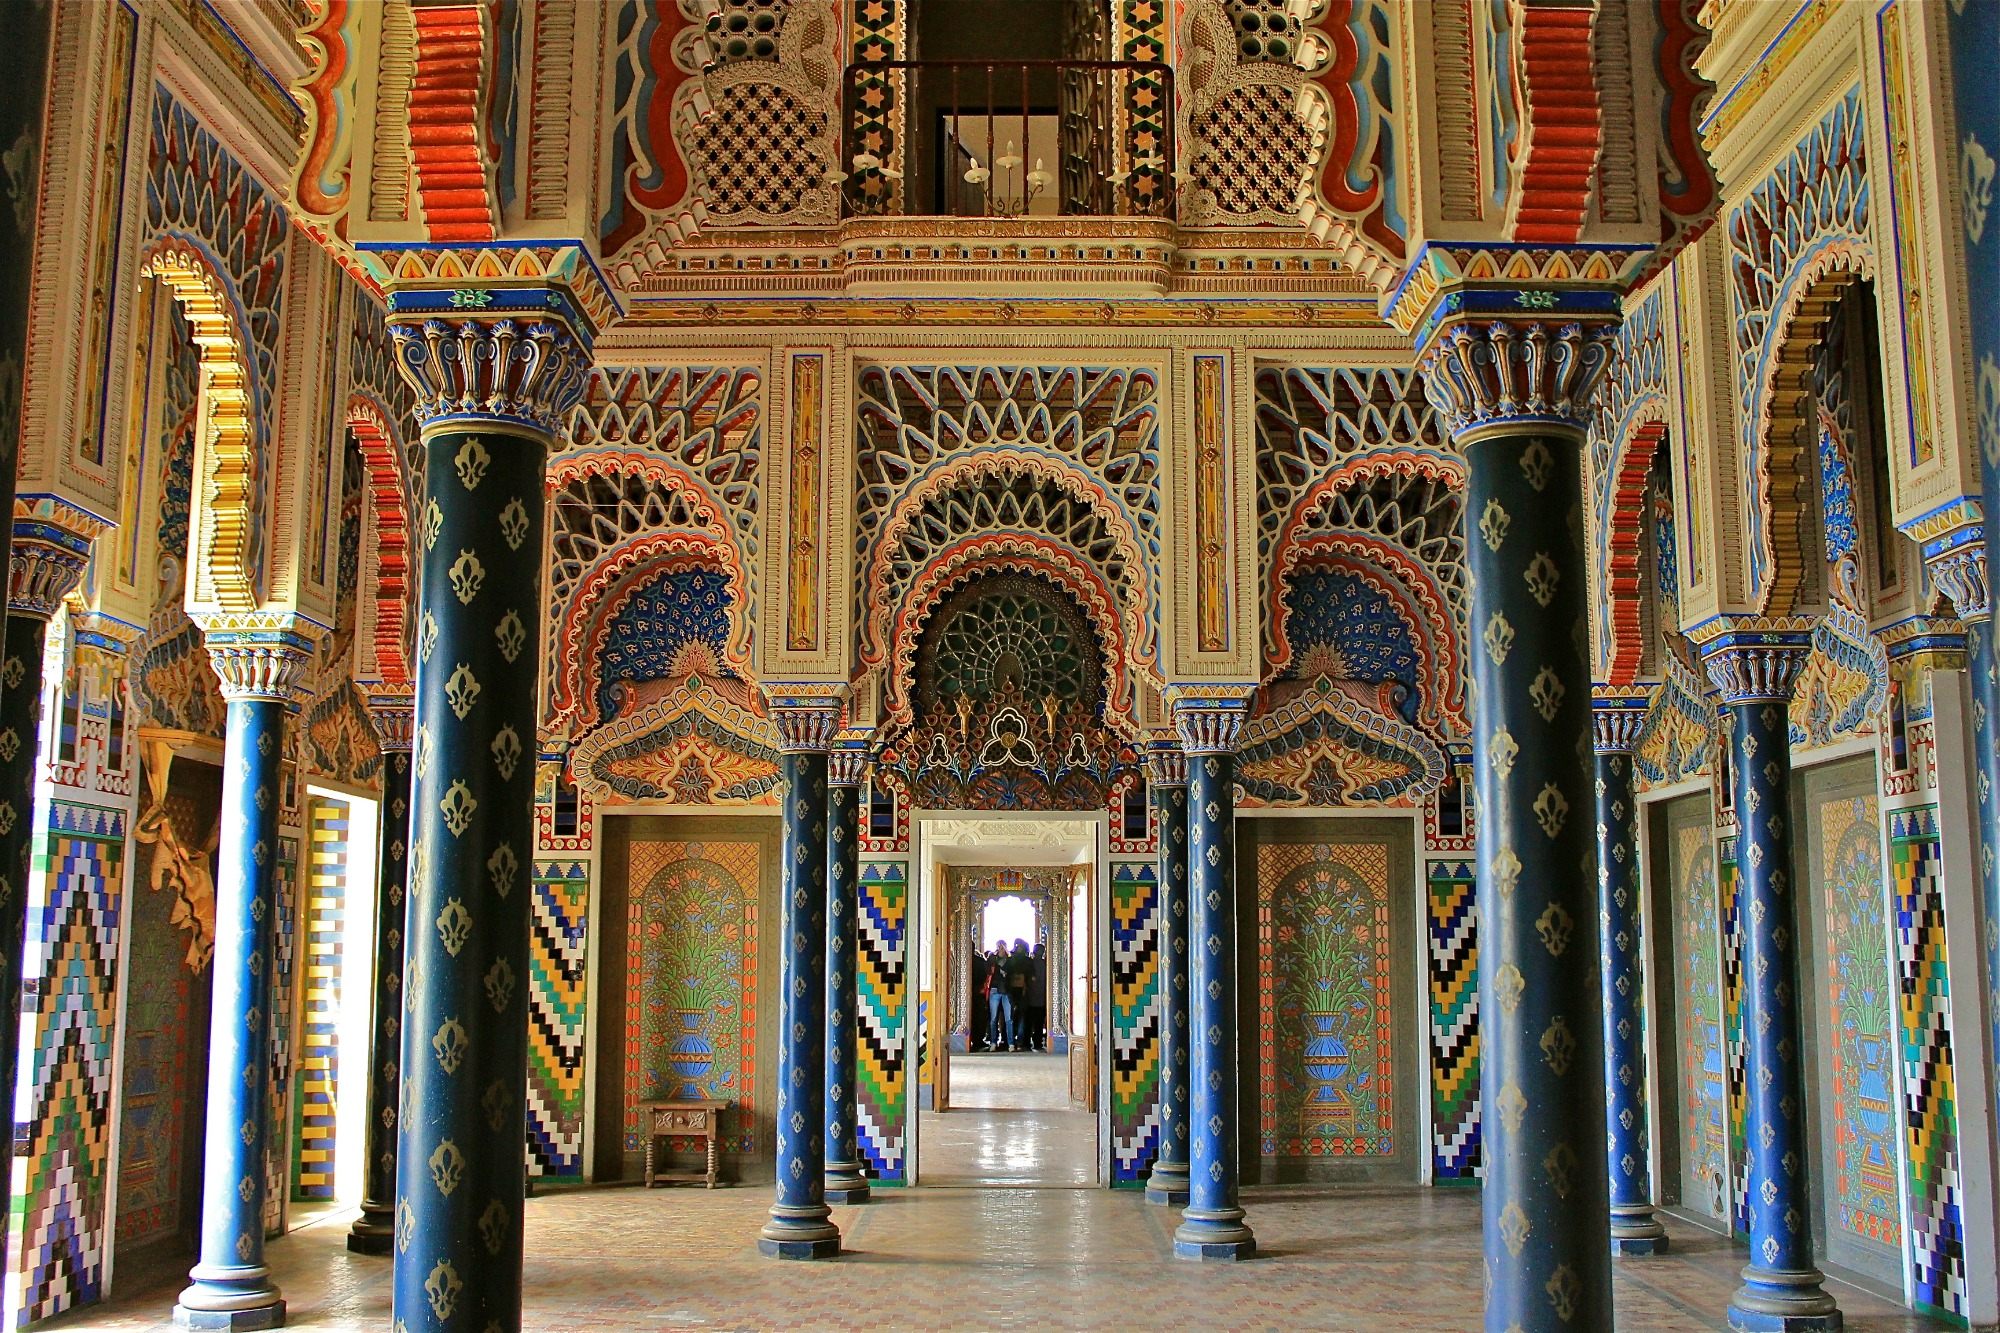 The amazing Sammezzano Castle